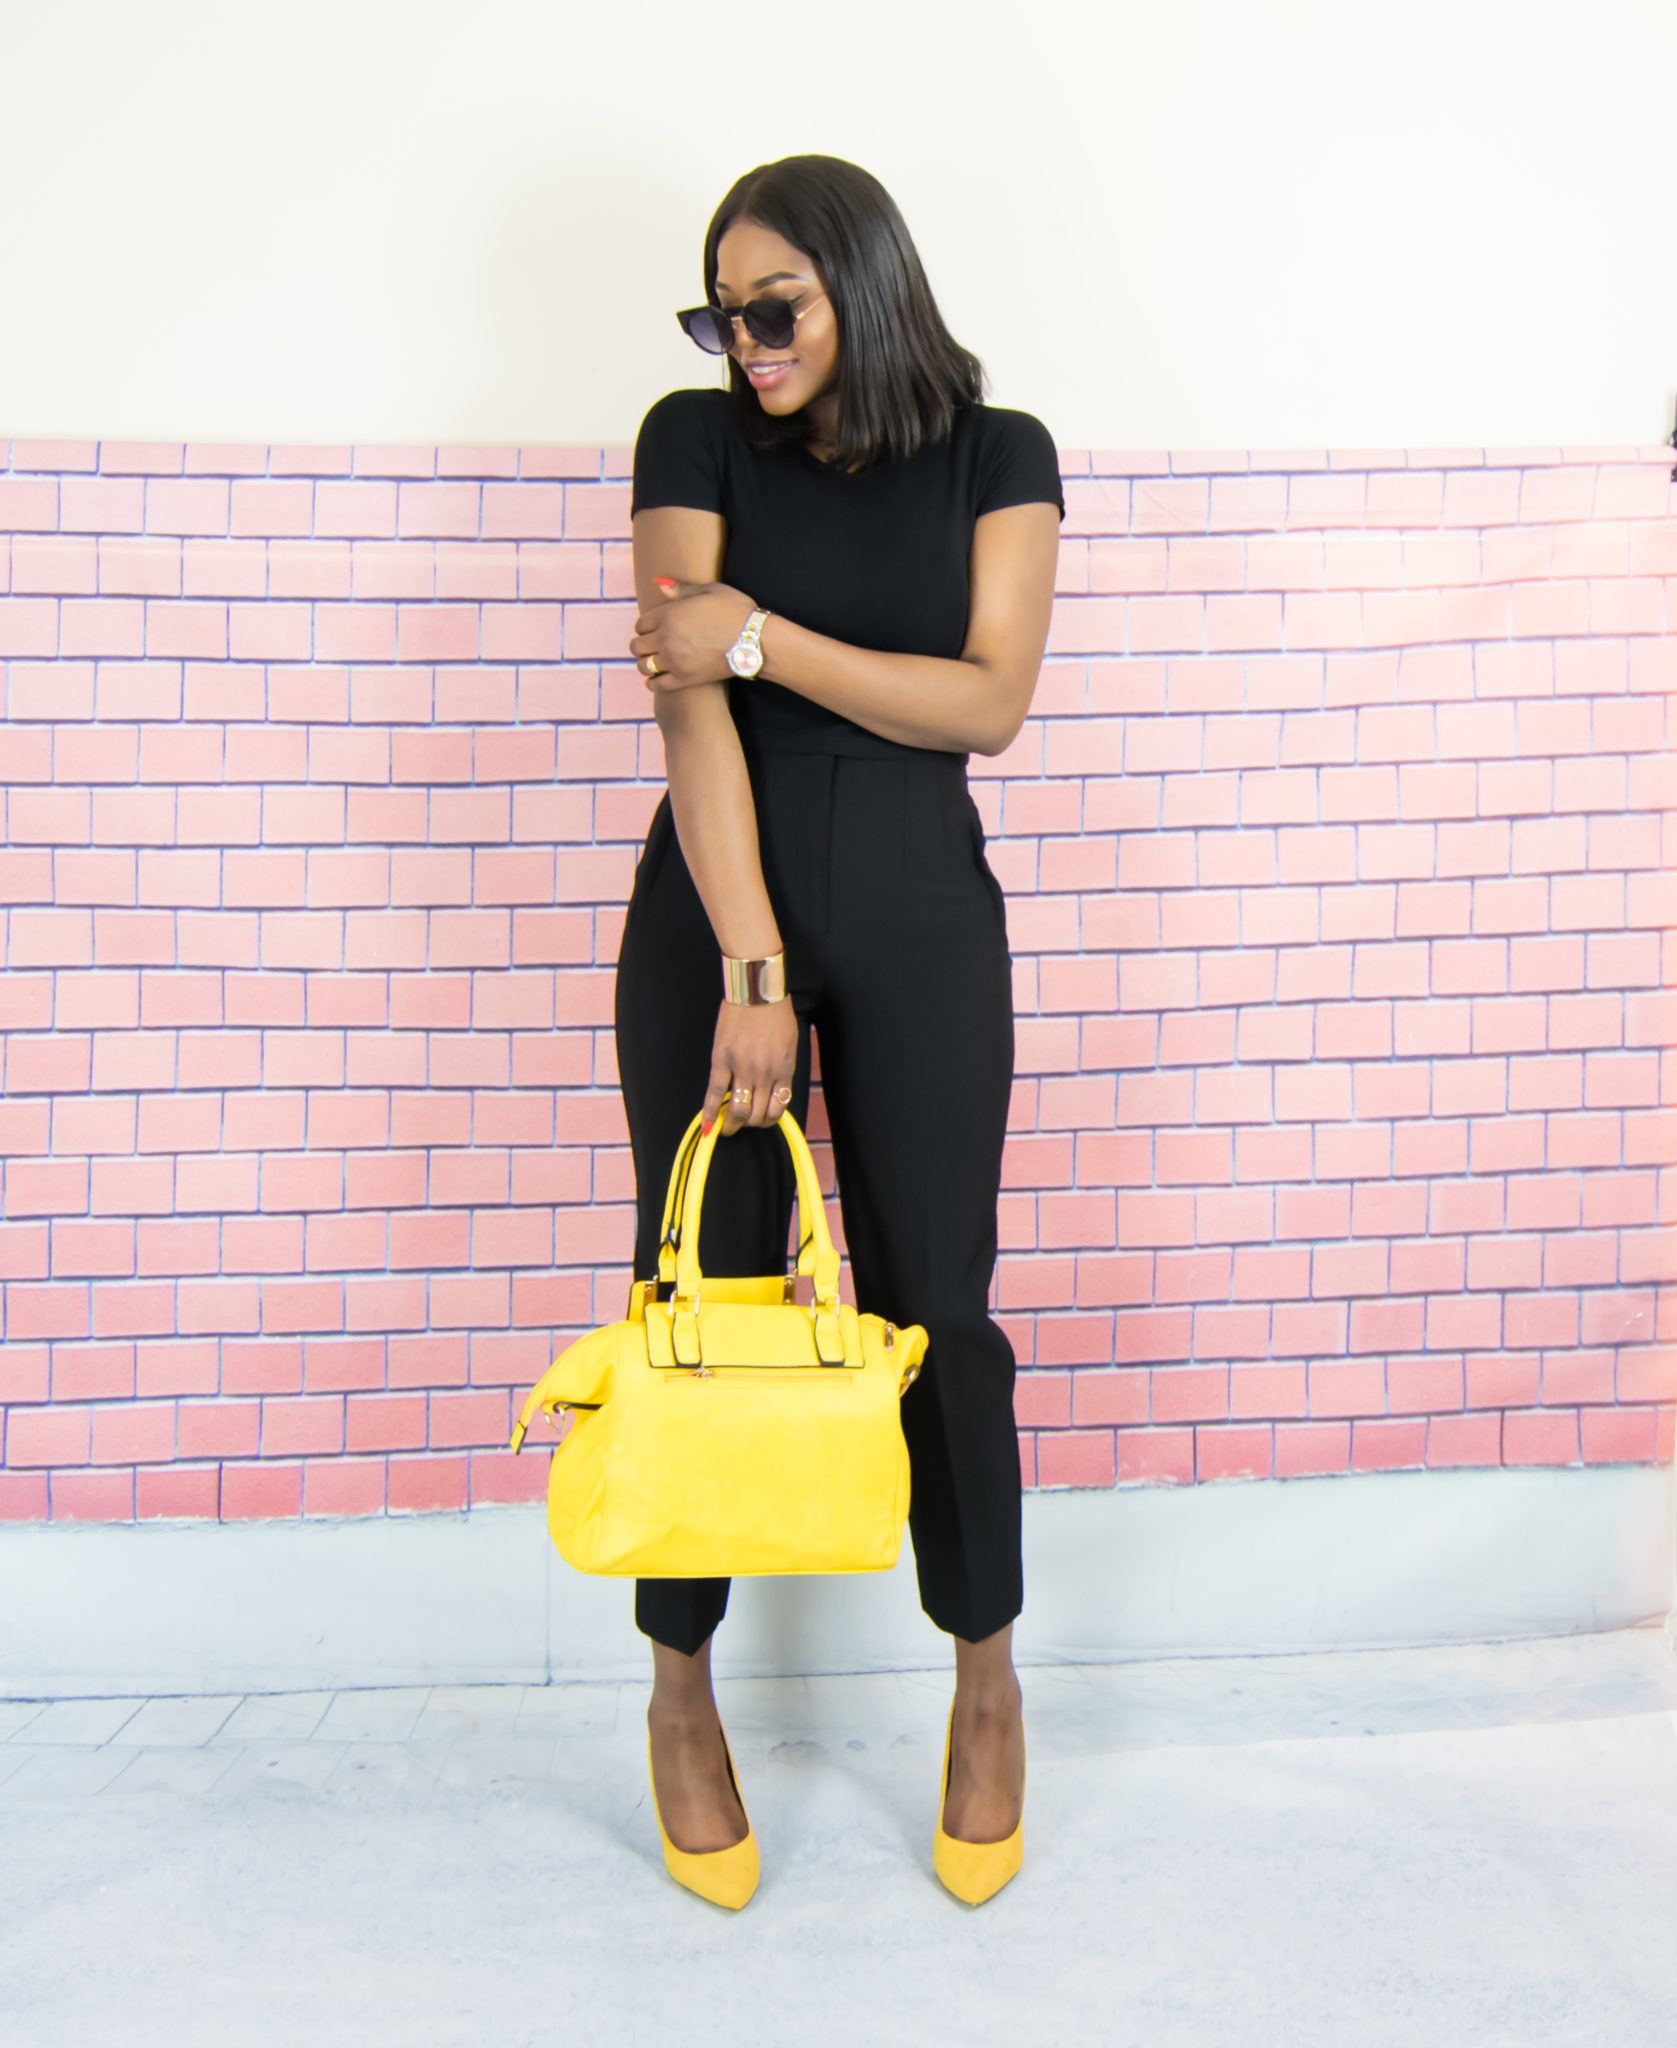 All black outfit + touch of yellow